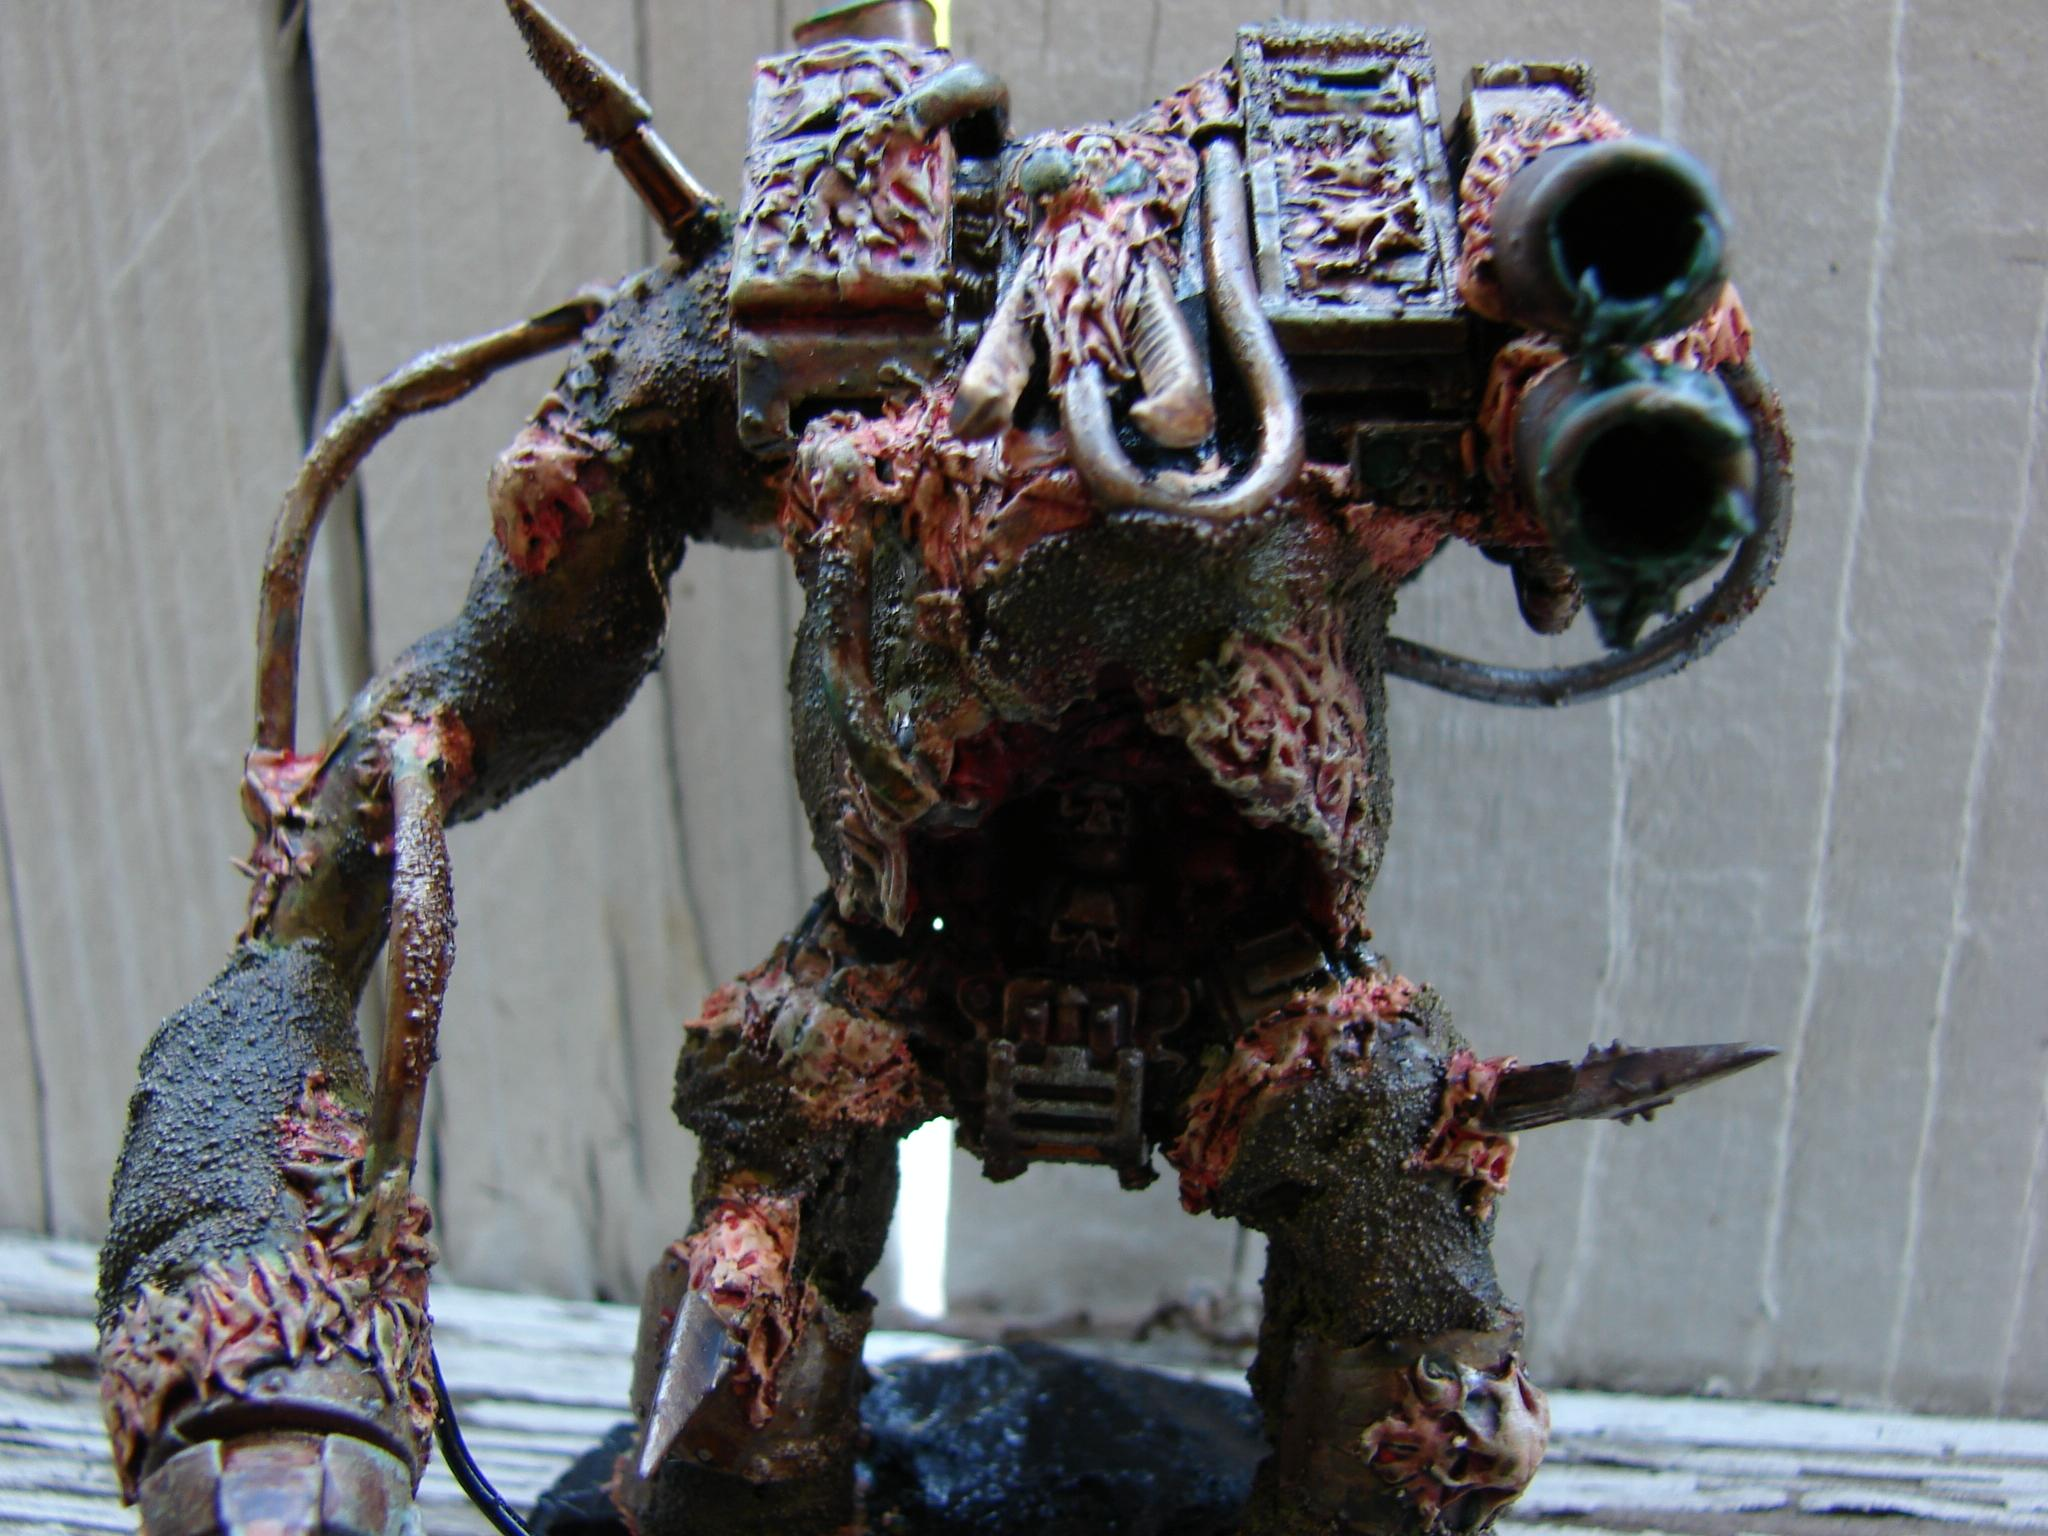 Chaos Space Marines, Conversion, Dreadnought, Nurgle, Warhammer 40,000